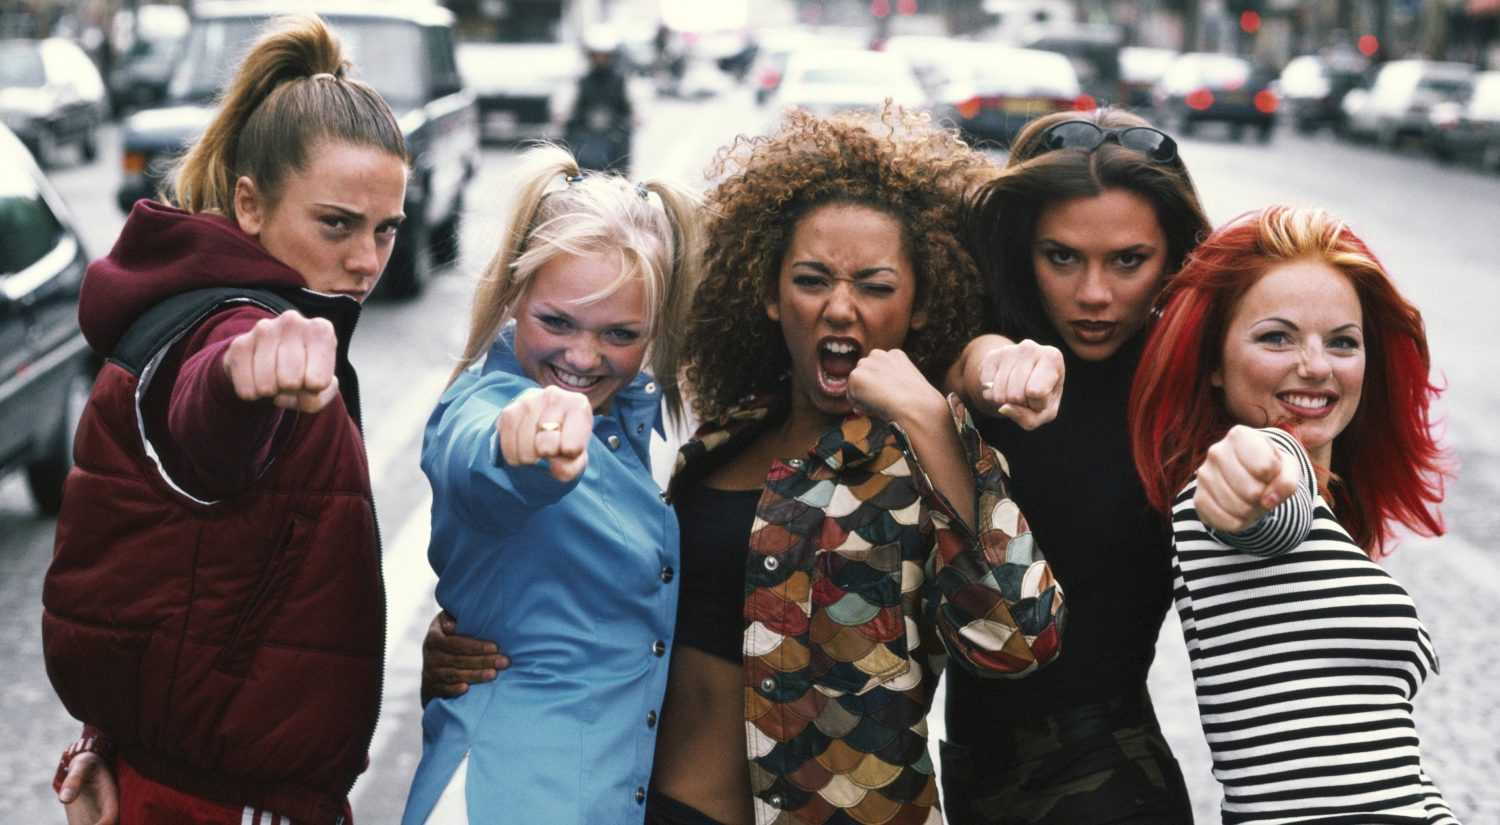 The Spice Girls standing on street